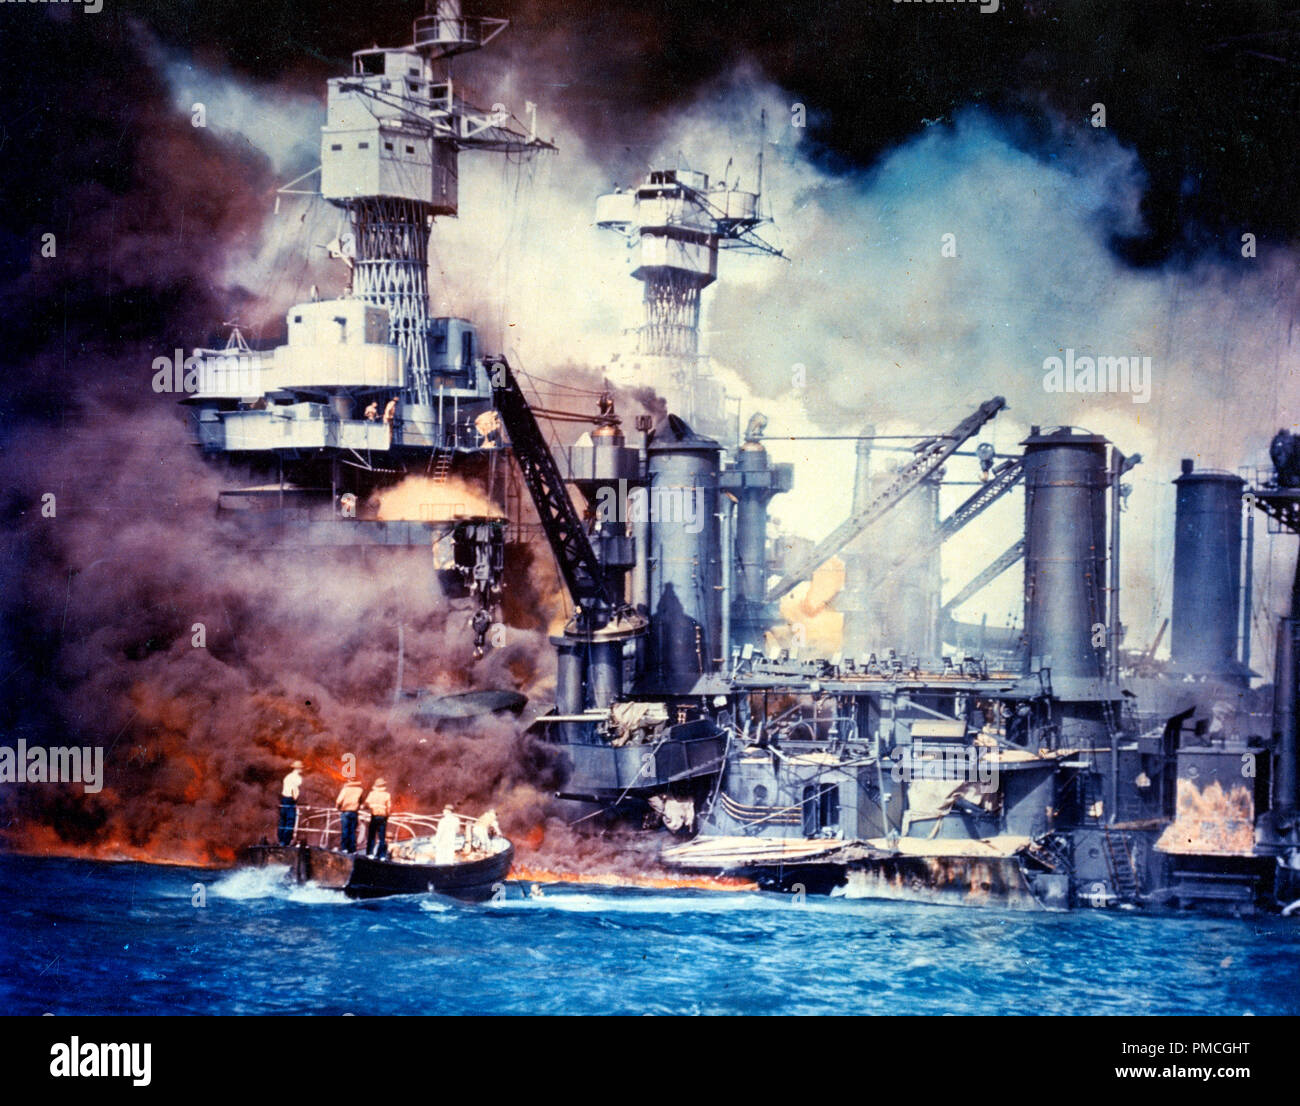 Sailors in a motor launch rescue a survivor from the water alongside the sunken USS West Virginia (BB-48) during or shortly after the Japanese air raid on Pearl Harbor. USS Tennessee (BB-43) is inboard of the sunken battleship.  This is a color-tinted version Photo  It is not an actual color photograph. - Stock Image